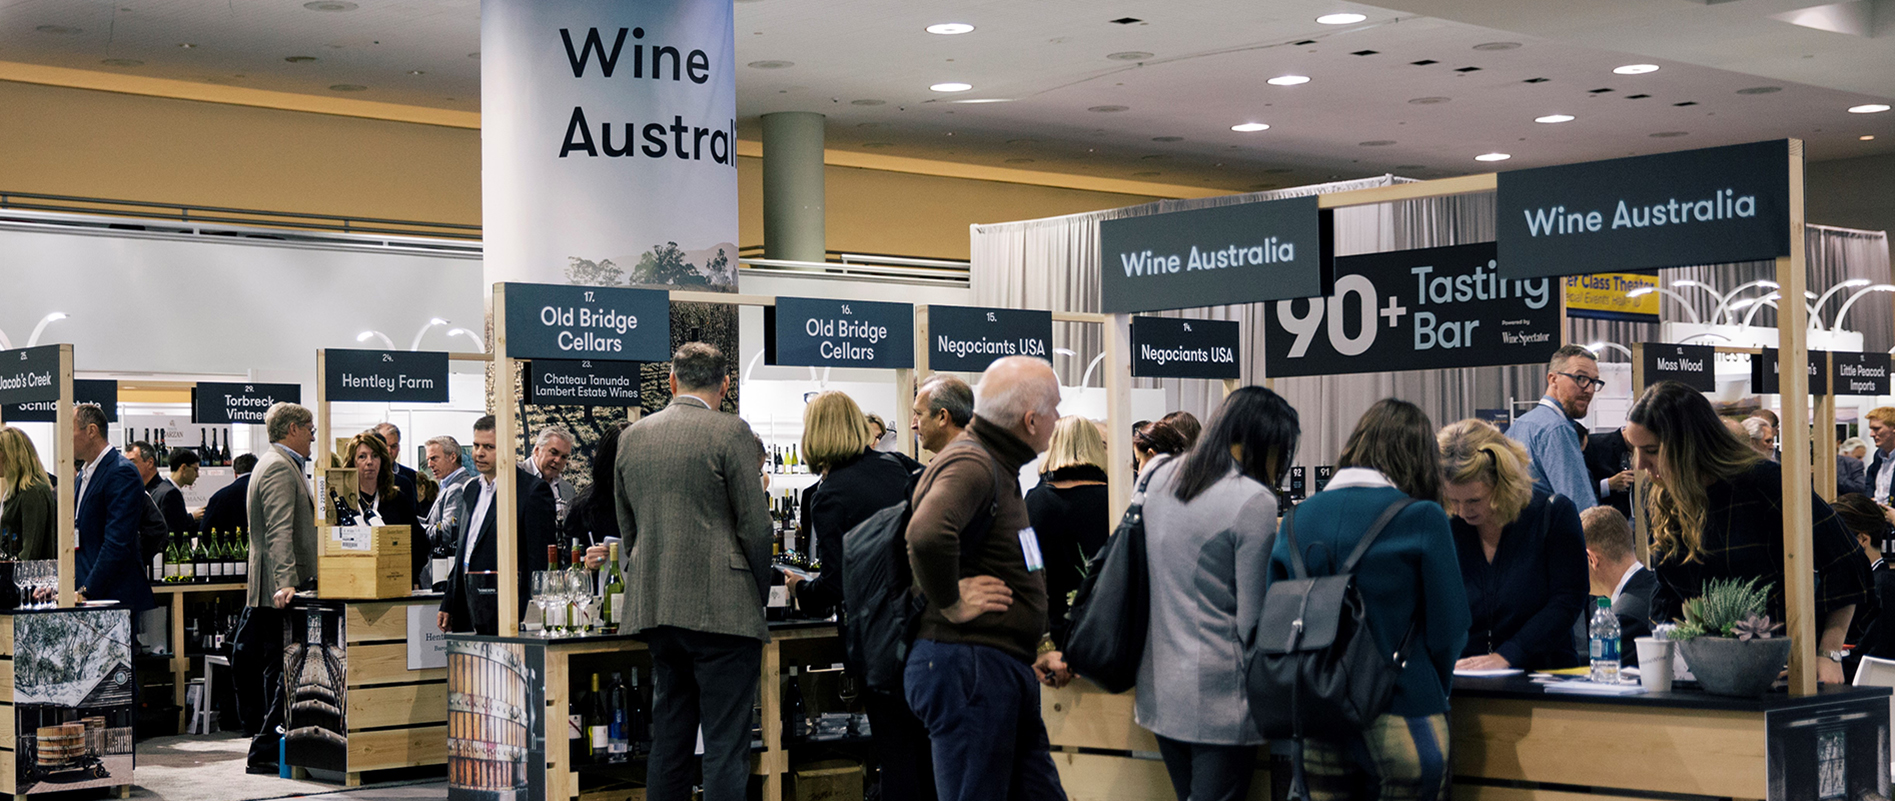 Wine Australia Marketing programs